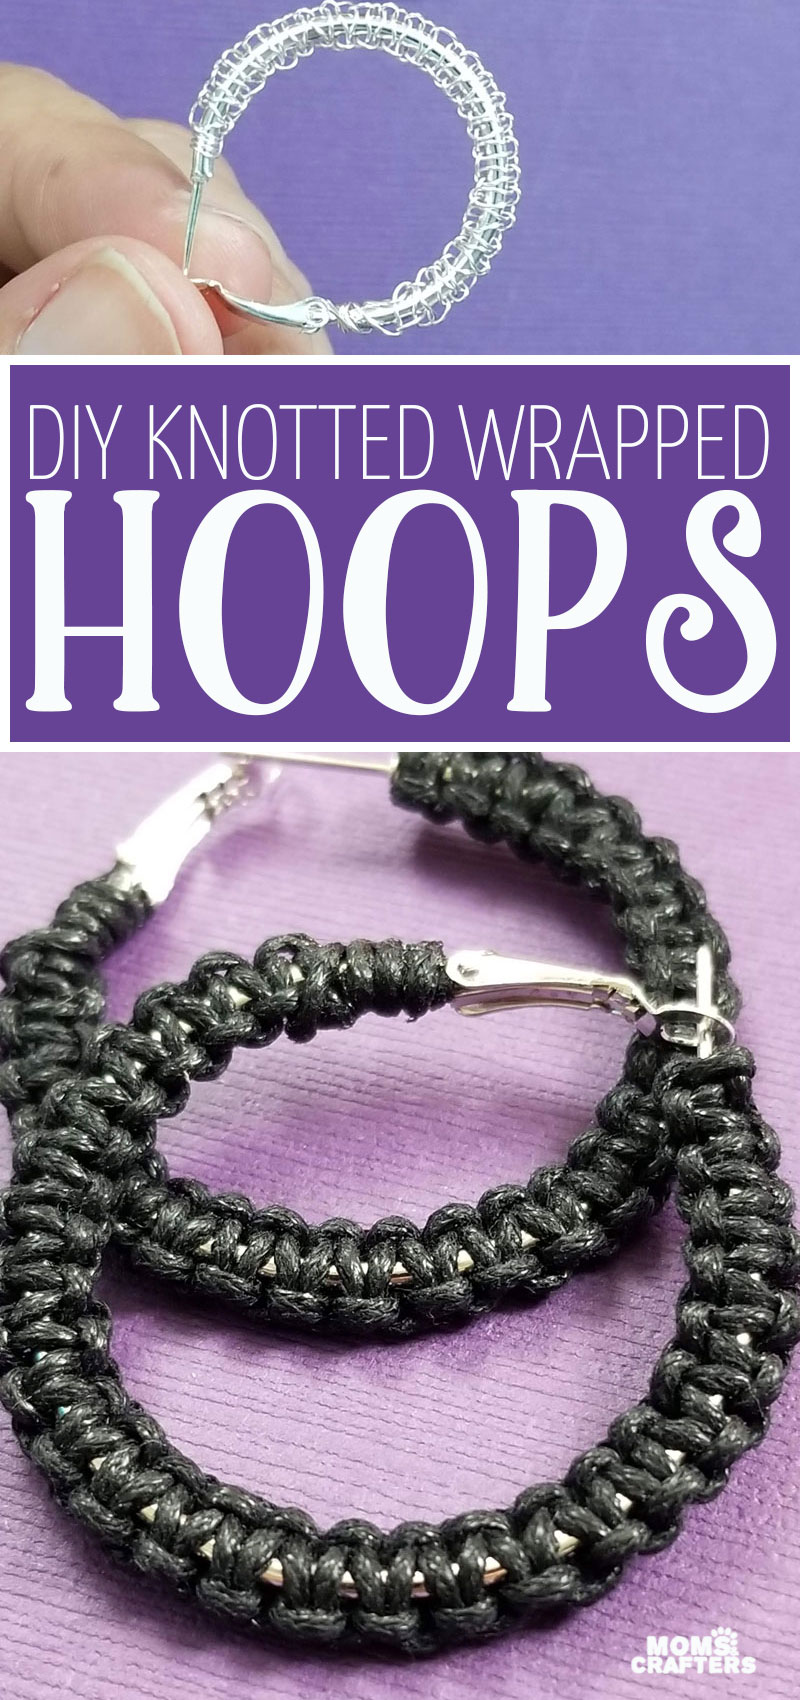 Click to learn how to make wrapped hoop earrings - using a cobra stitch! You can make these with string or cord, or even with wire, for a cool crochet earring look!